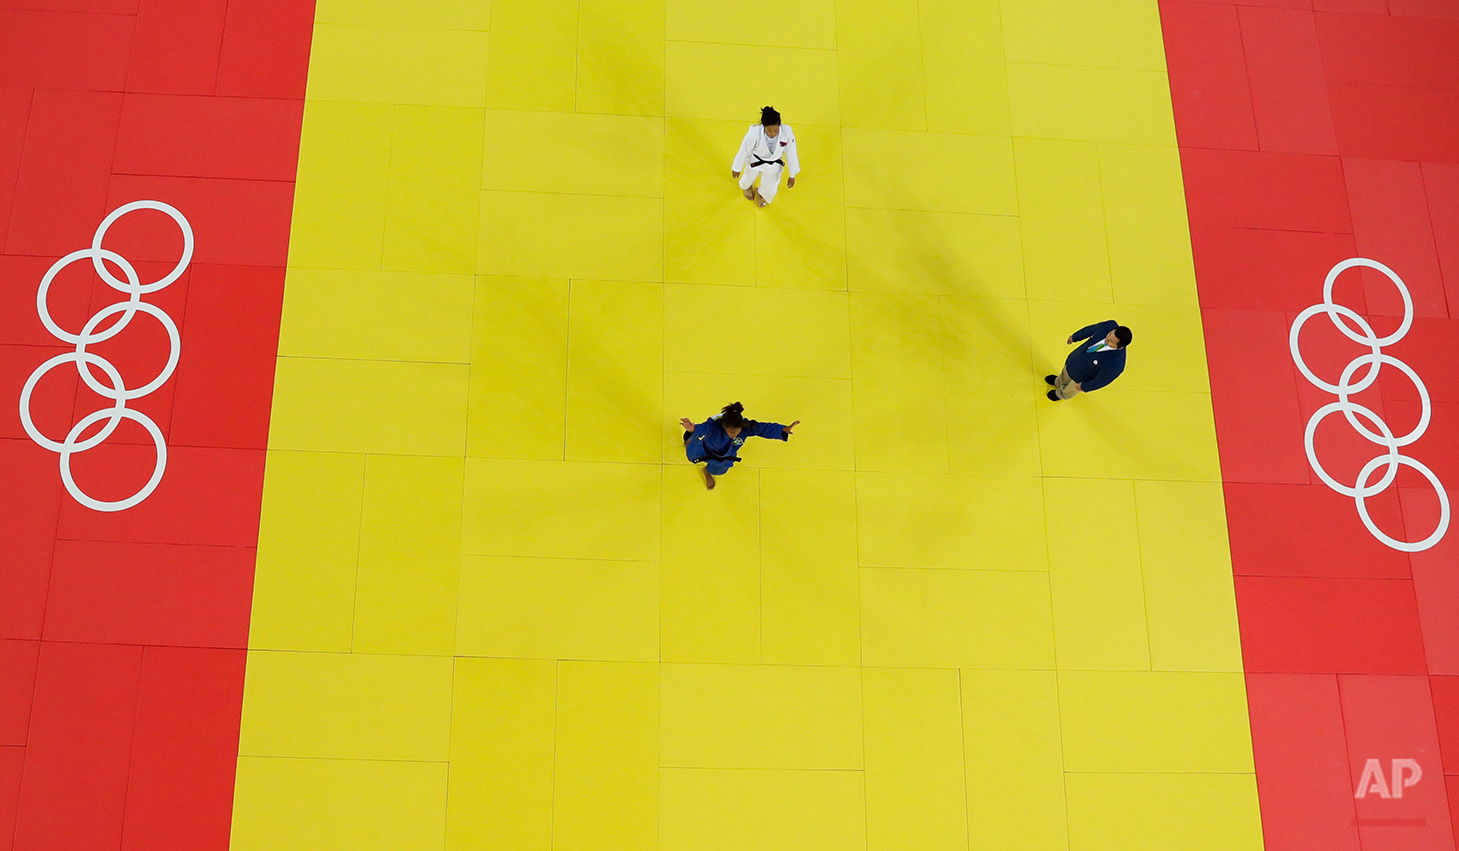 Brazil's Rafaela Silva, blue, reacts after winning the gold medal against Mongolia's Sumiya Dorjsuren, white, during the final of the women's 57-kg judo competition at the 2016 Summer Olympics in Rio de Janeiro, Brazil, Monday, Aug. 8, 2016. (AP Photo/Morry Gash)